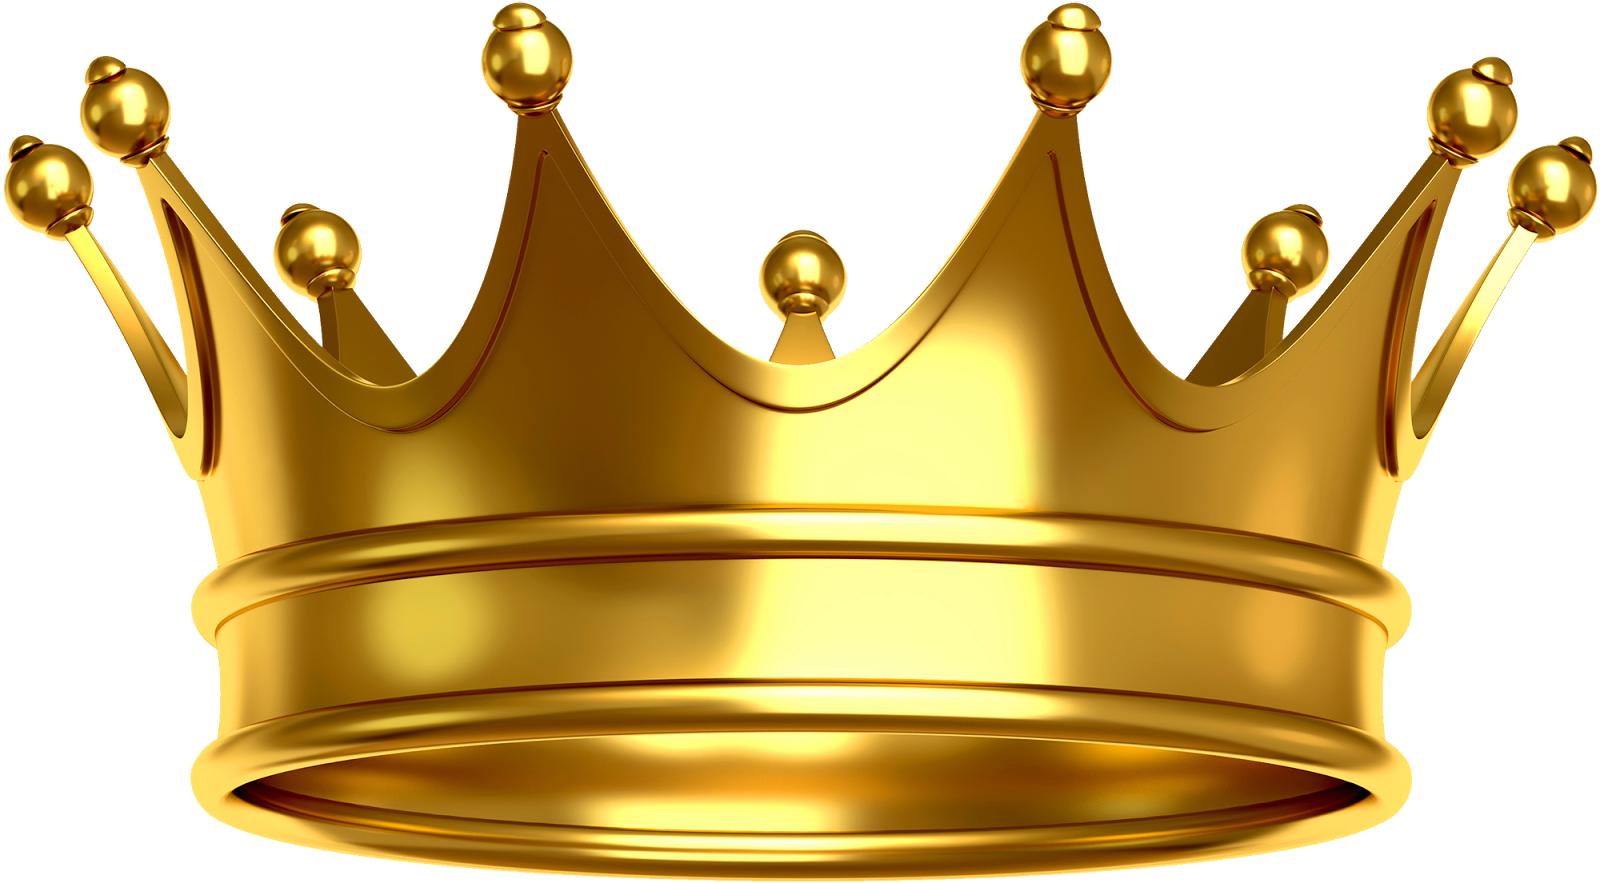 Crown fillagree clipart picture freeuse Artes, ideias, moldes, personalizados para festas. | Clip Art ... picture freeuse